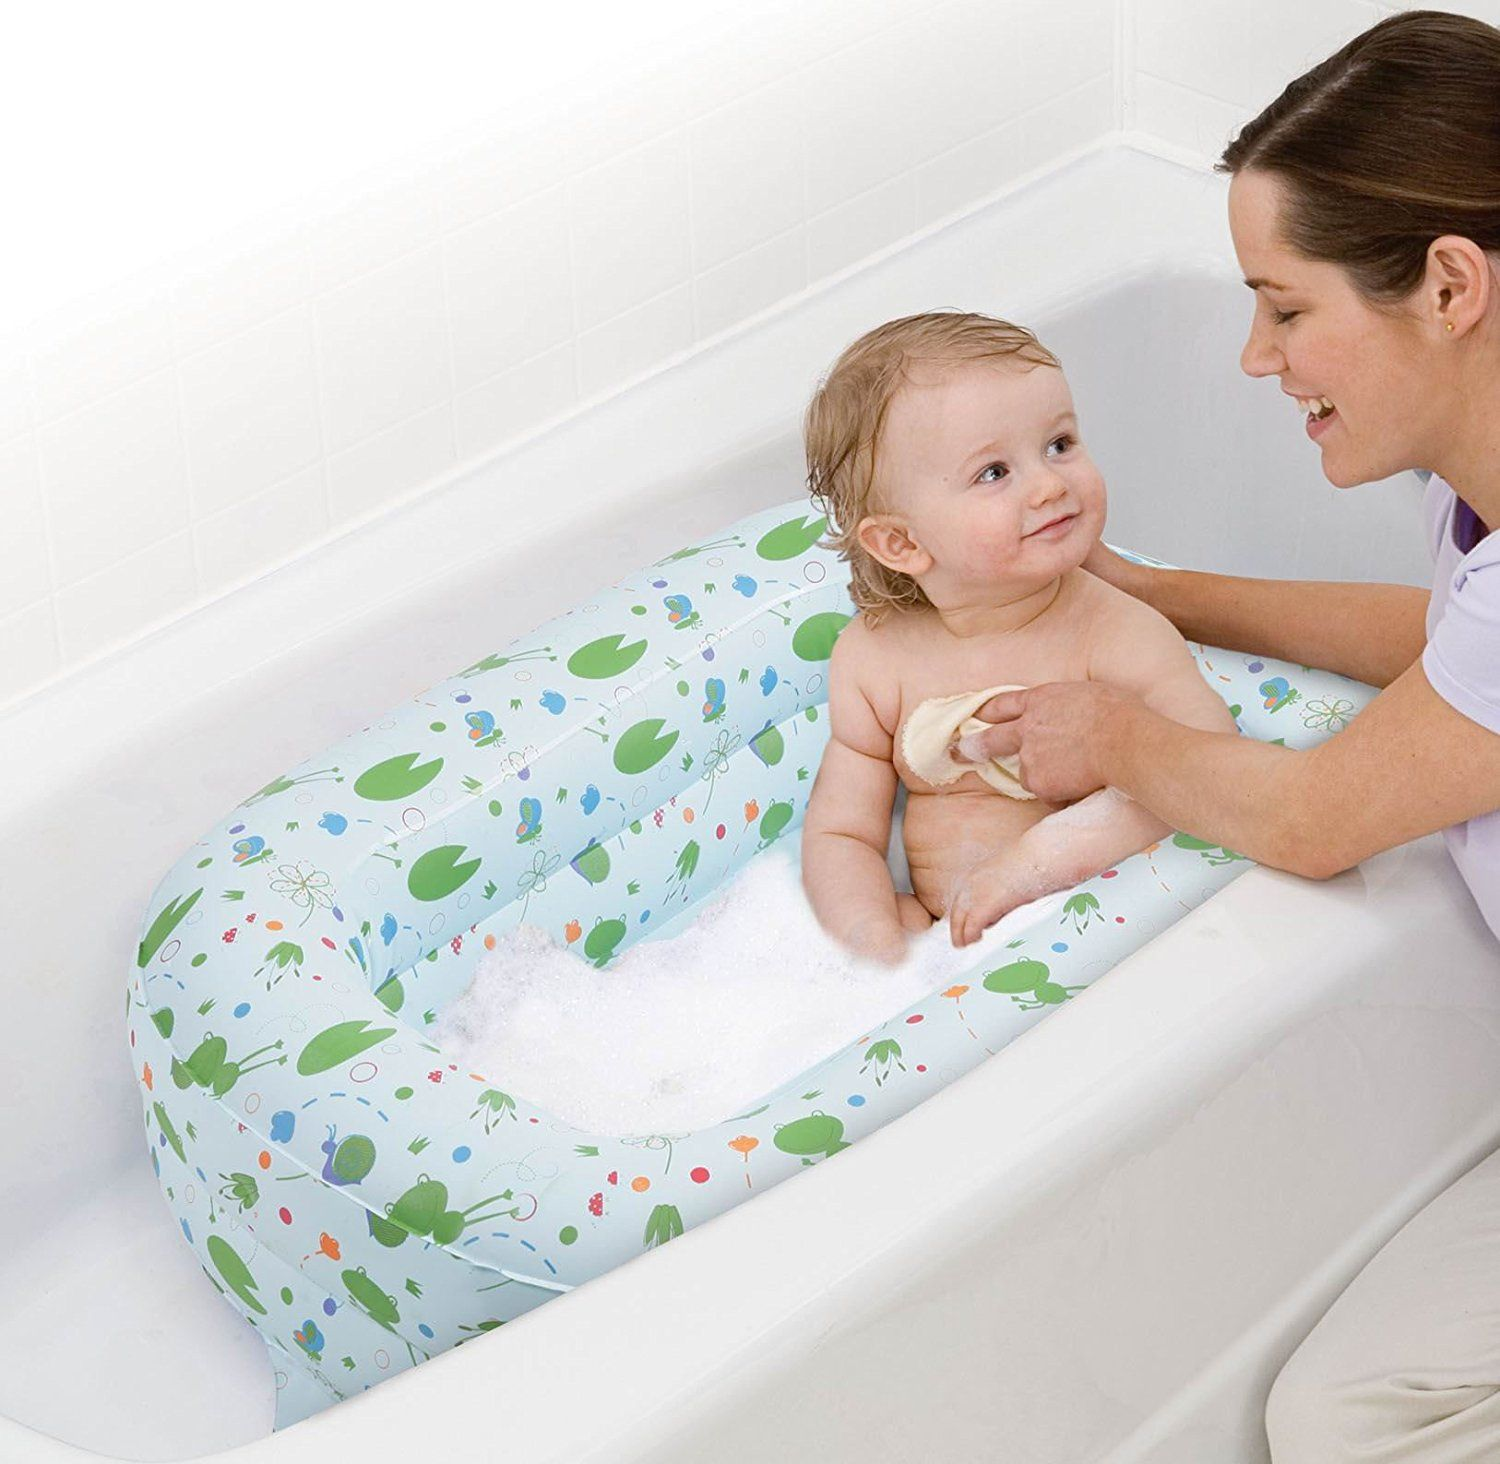 Inflatable Bathtub Baby Ideas — Fancy Bath Tub Designs ...